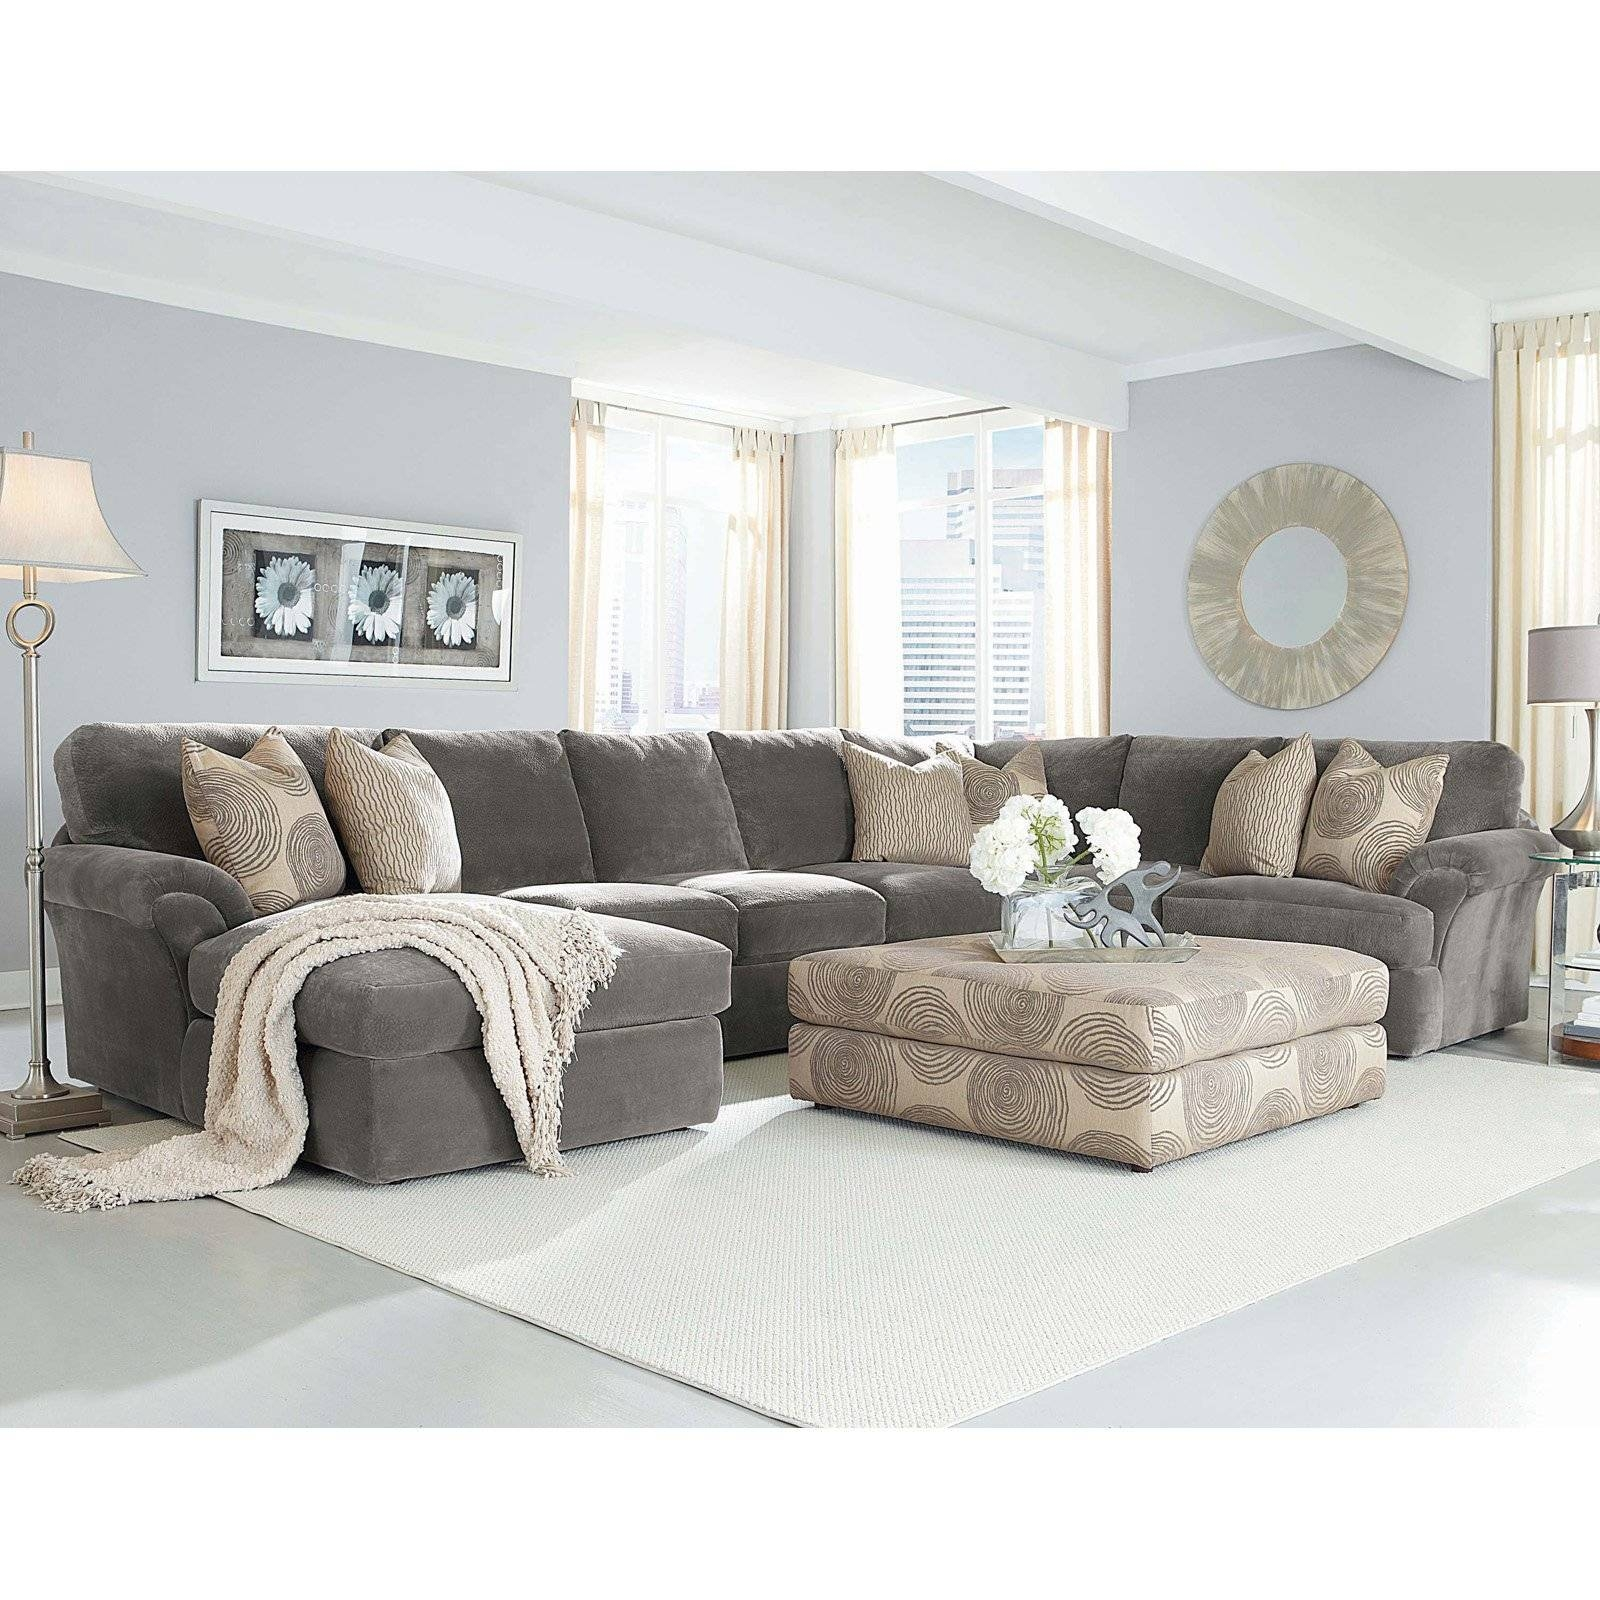 Sofas Center : Seatal Sofa Phenomenal Image Ideas The Most Popular for 7 Seat Sectional Sofa (Image 28 of 30)